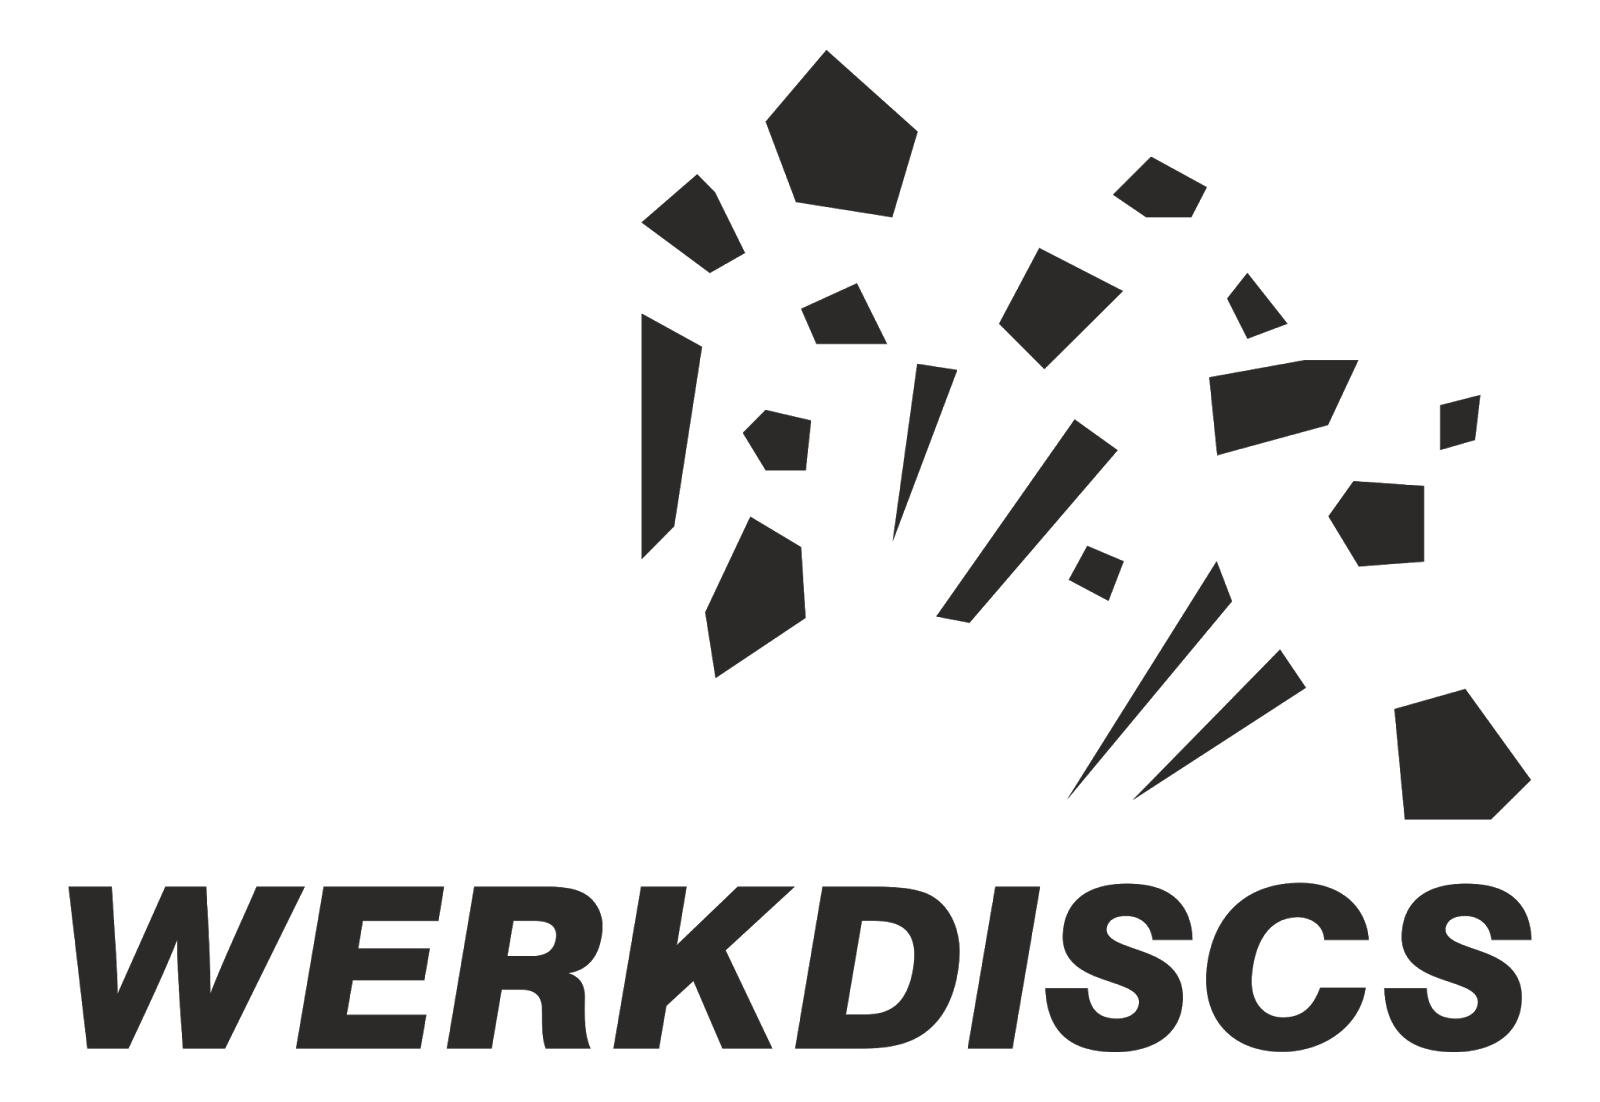 Vector record label. Logos of electronic music